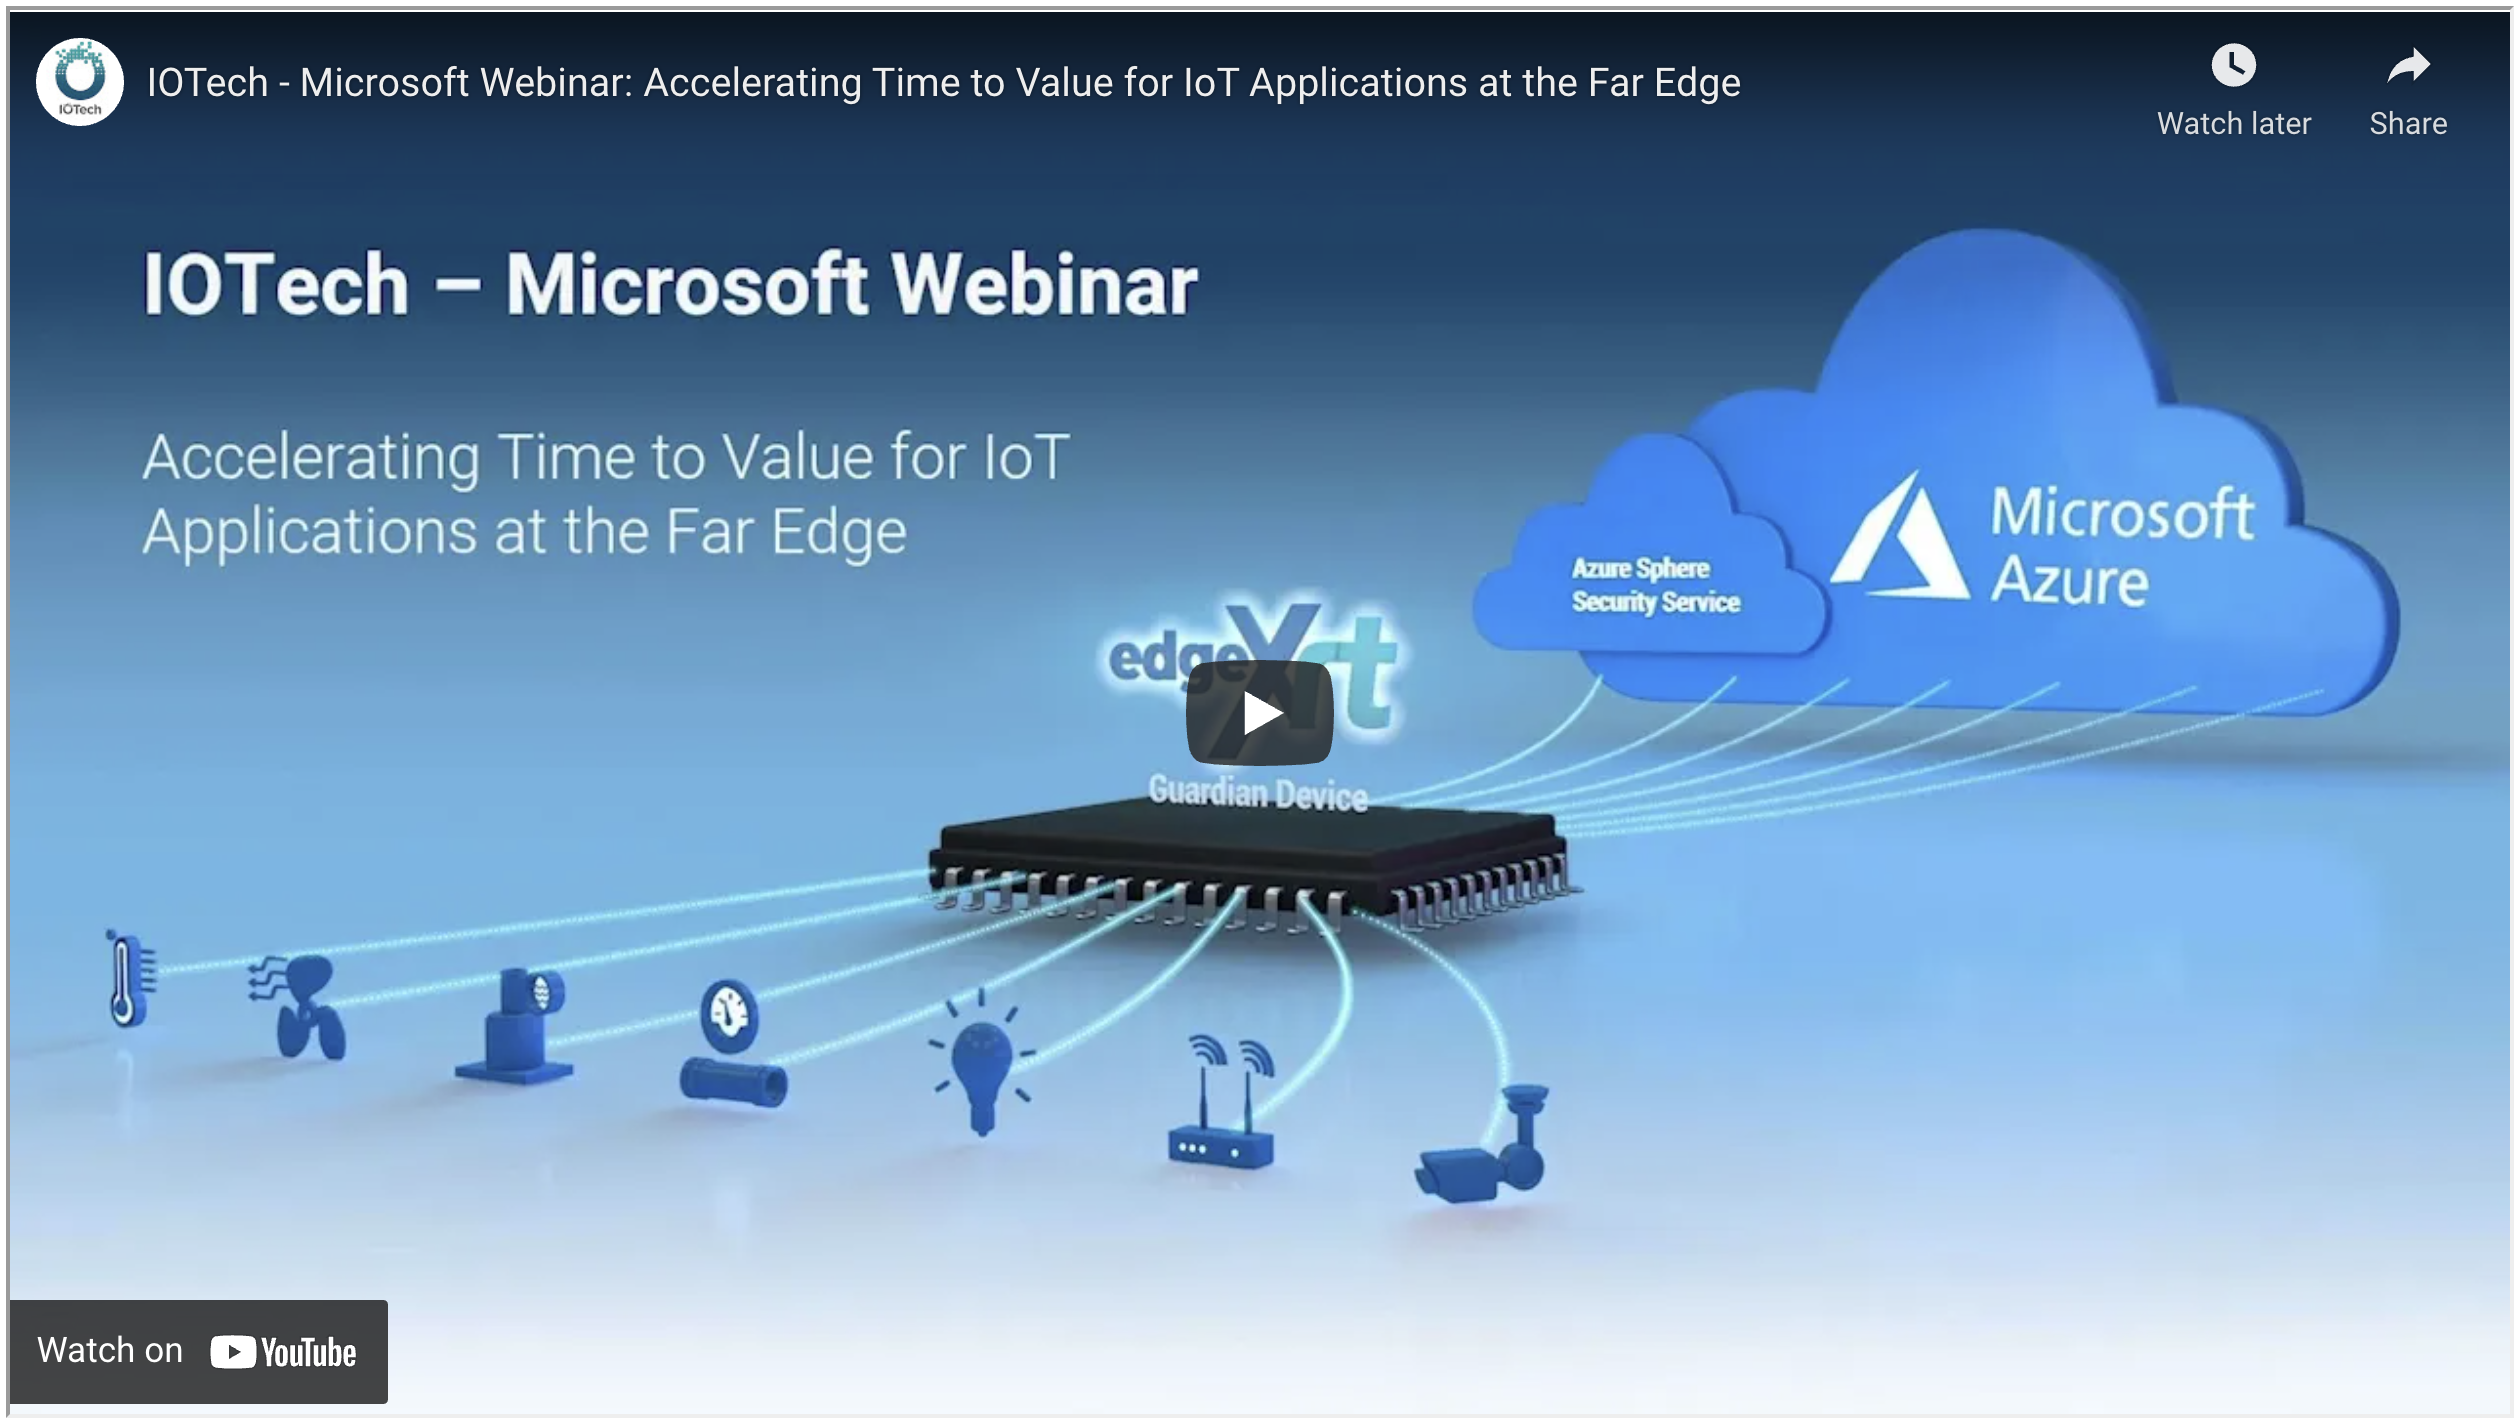 IOTech Webinar: Accelerating Time to Value for IoT Applications at the Far Edge